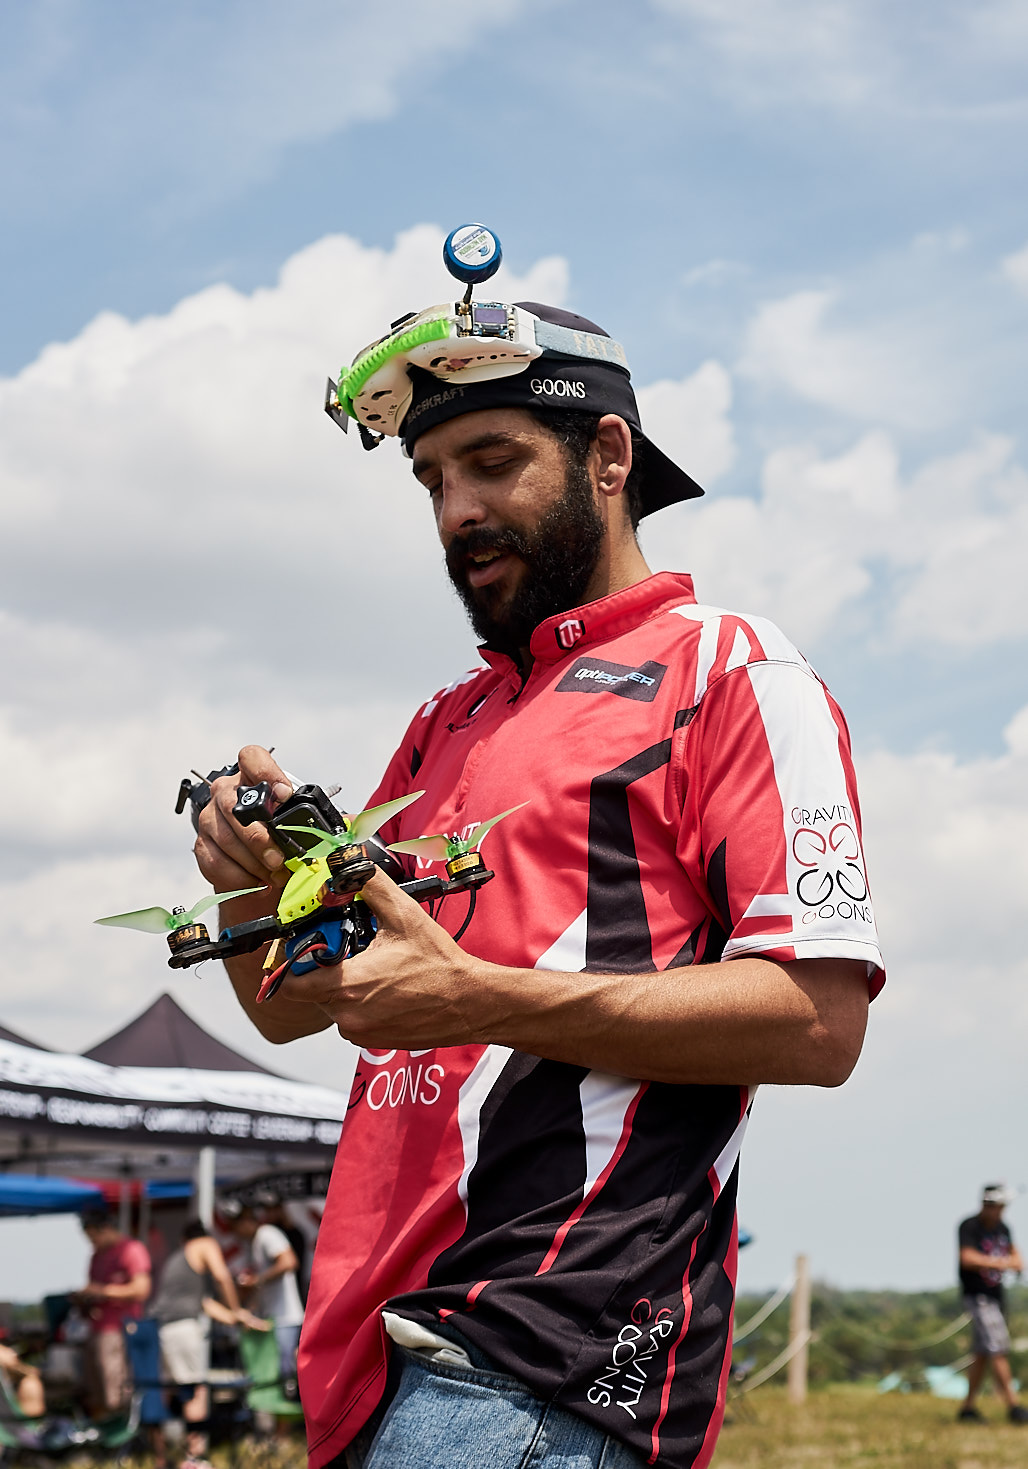 broward_fpv_drone_racing_qualifiers_davie_florida_jose_romero_wordintown_april_2017_ DSC09048 1